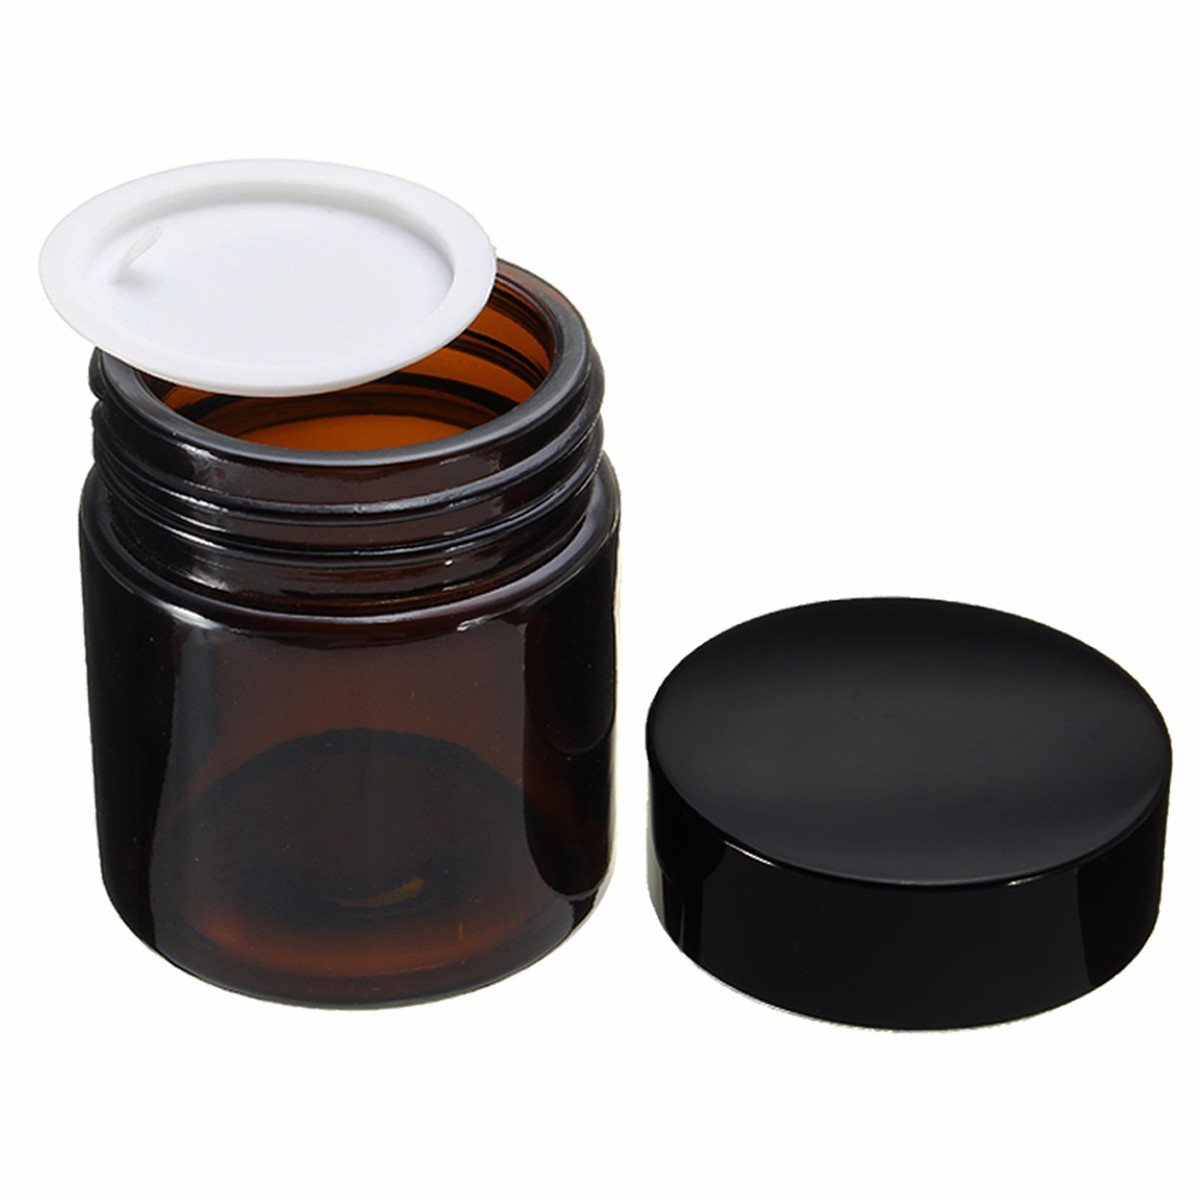 1pcs brown round empty amber glass jar makeup pot 120ml cream jars cosmetic packaging container cosmetic - Wholesale Glass Jars